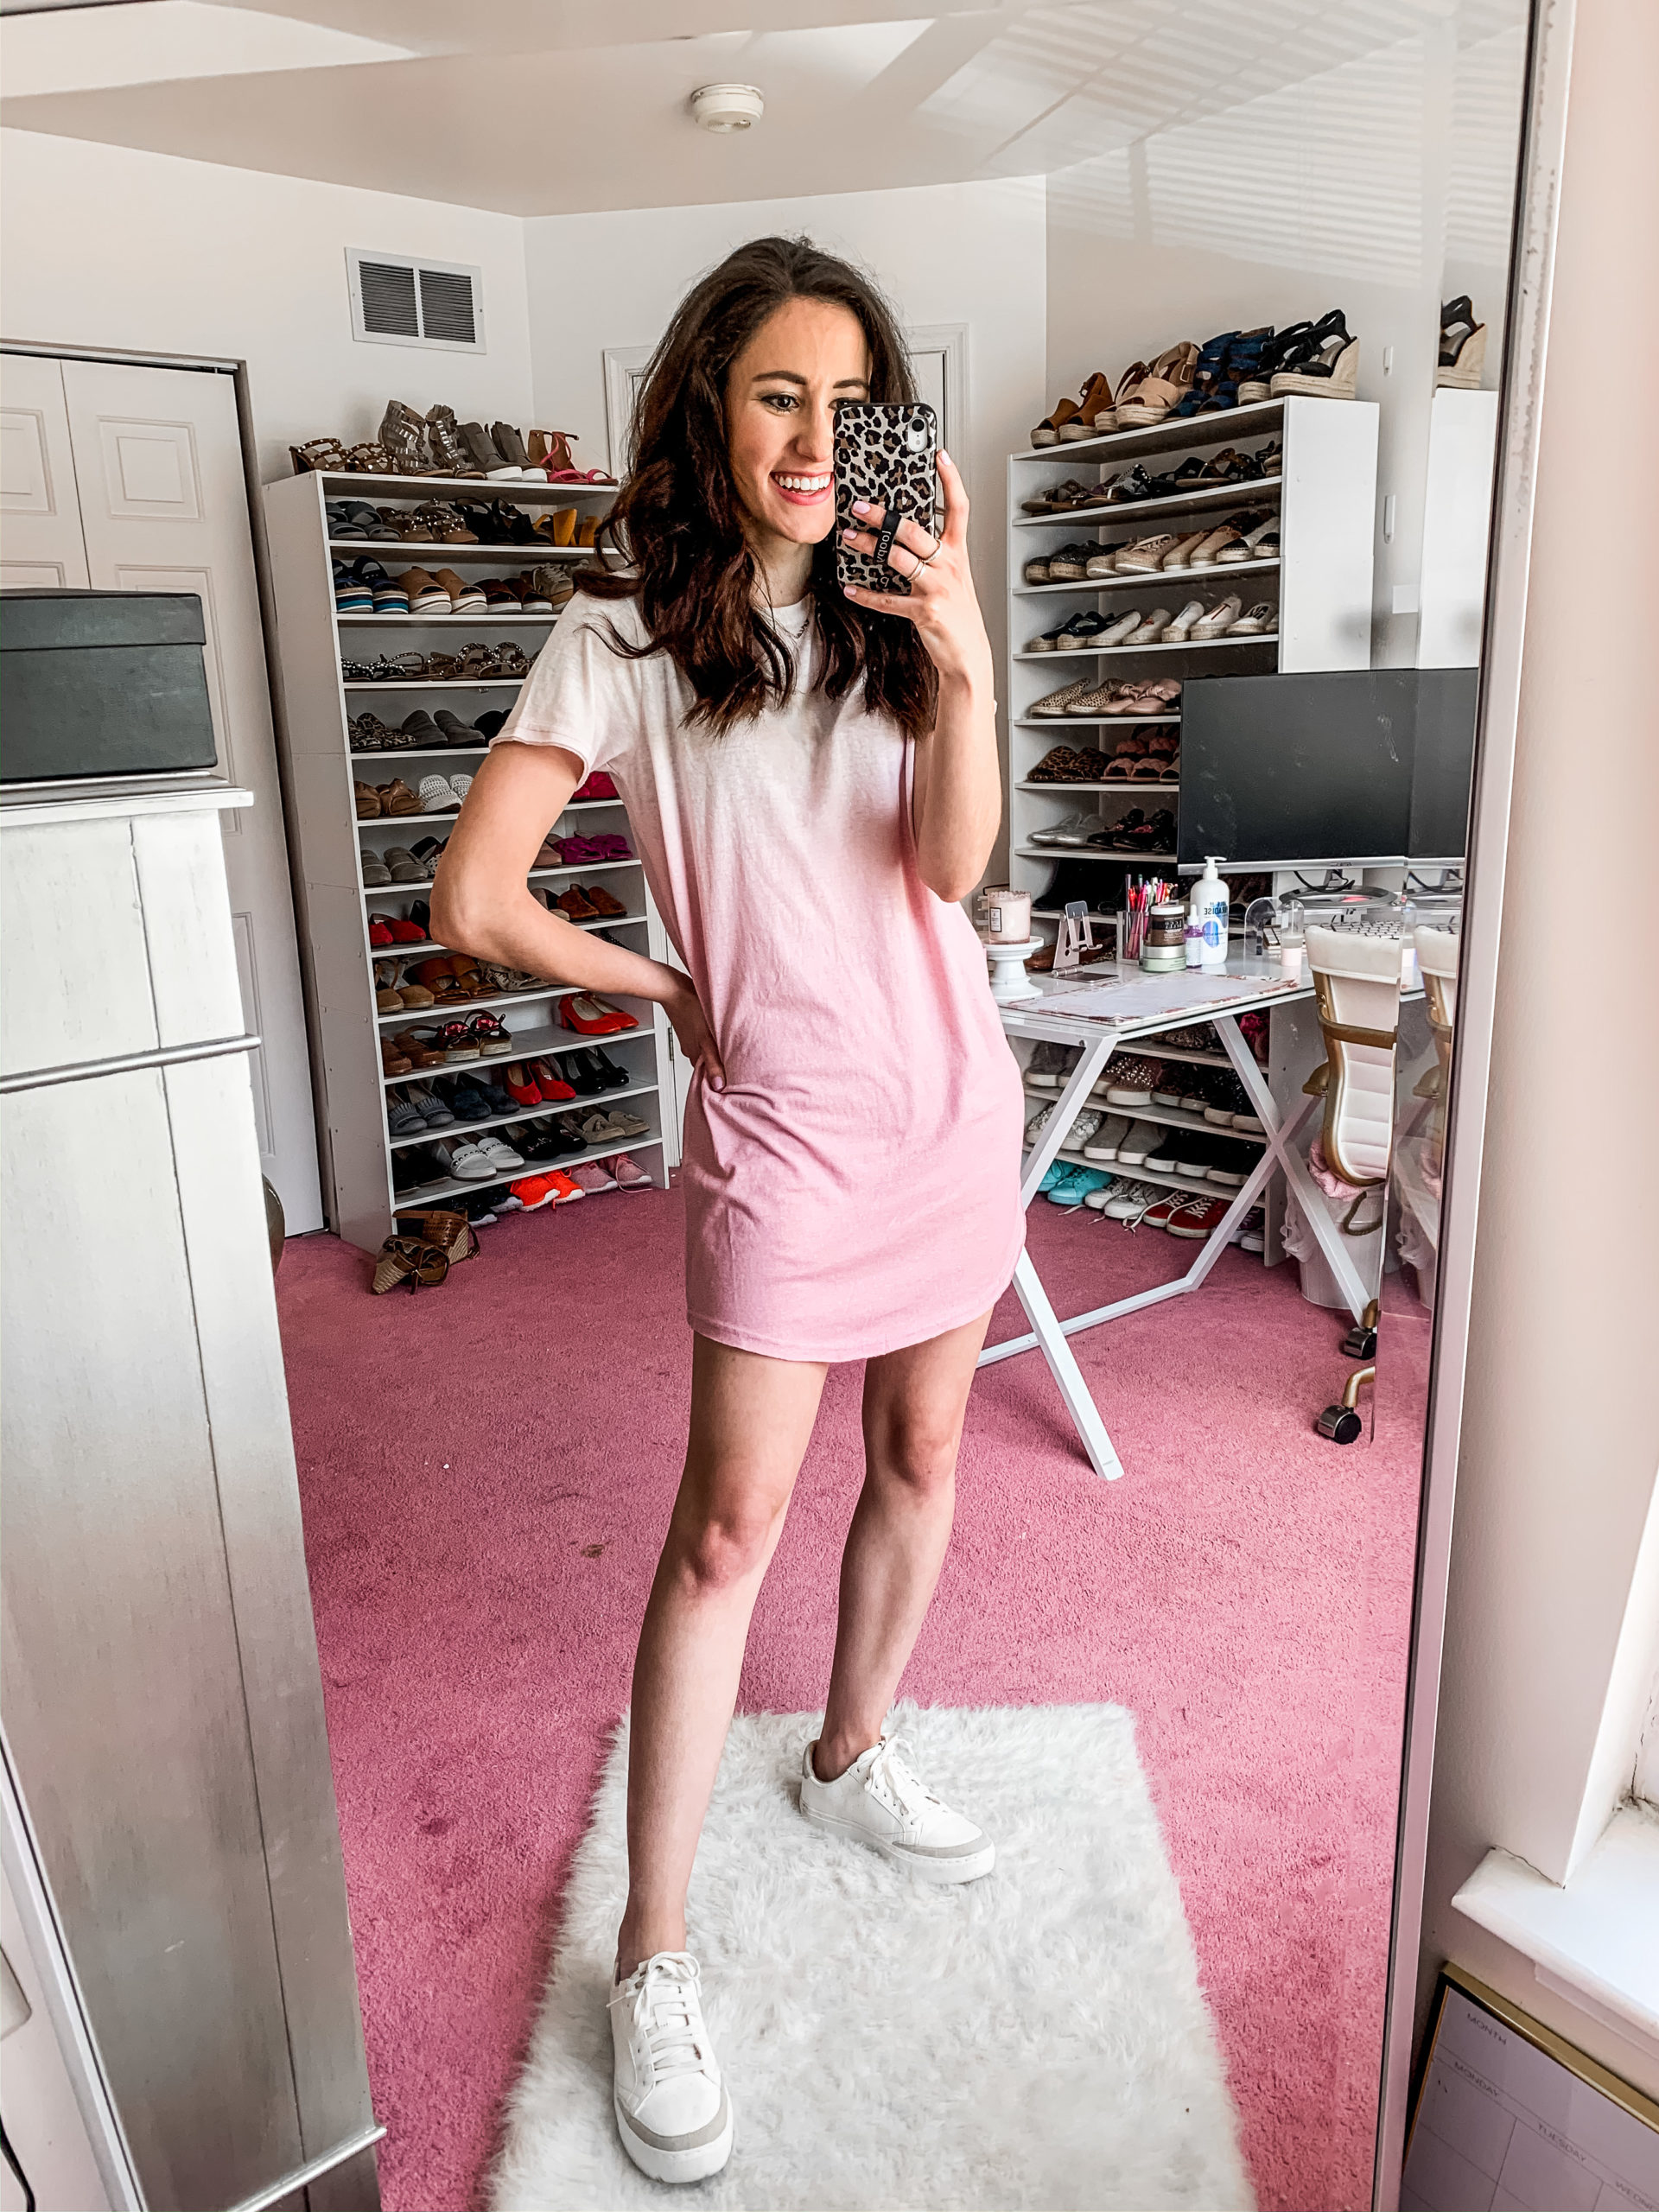 My Quarantine Uniforms - 9 Comfy, Affordable Loungewear Outfits on Coming Up Roses (Featuring Red Dress Boutique, Target, + MORE!)